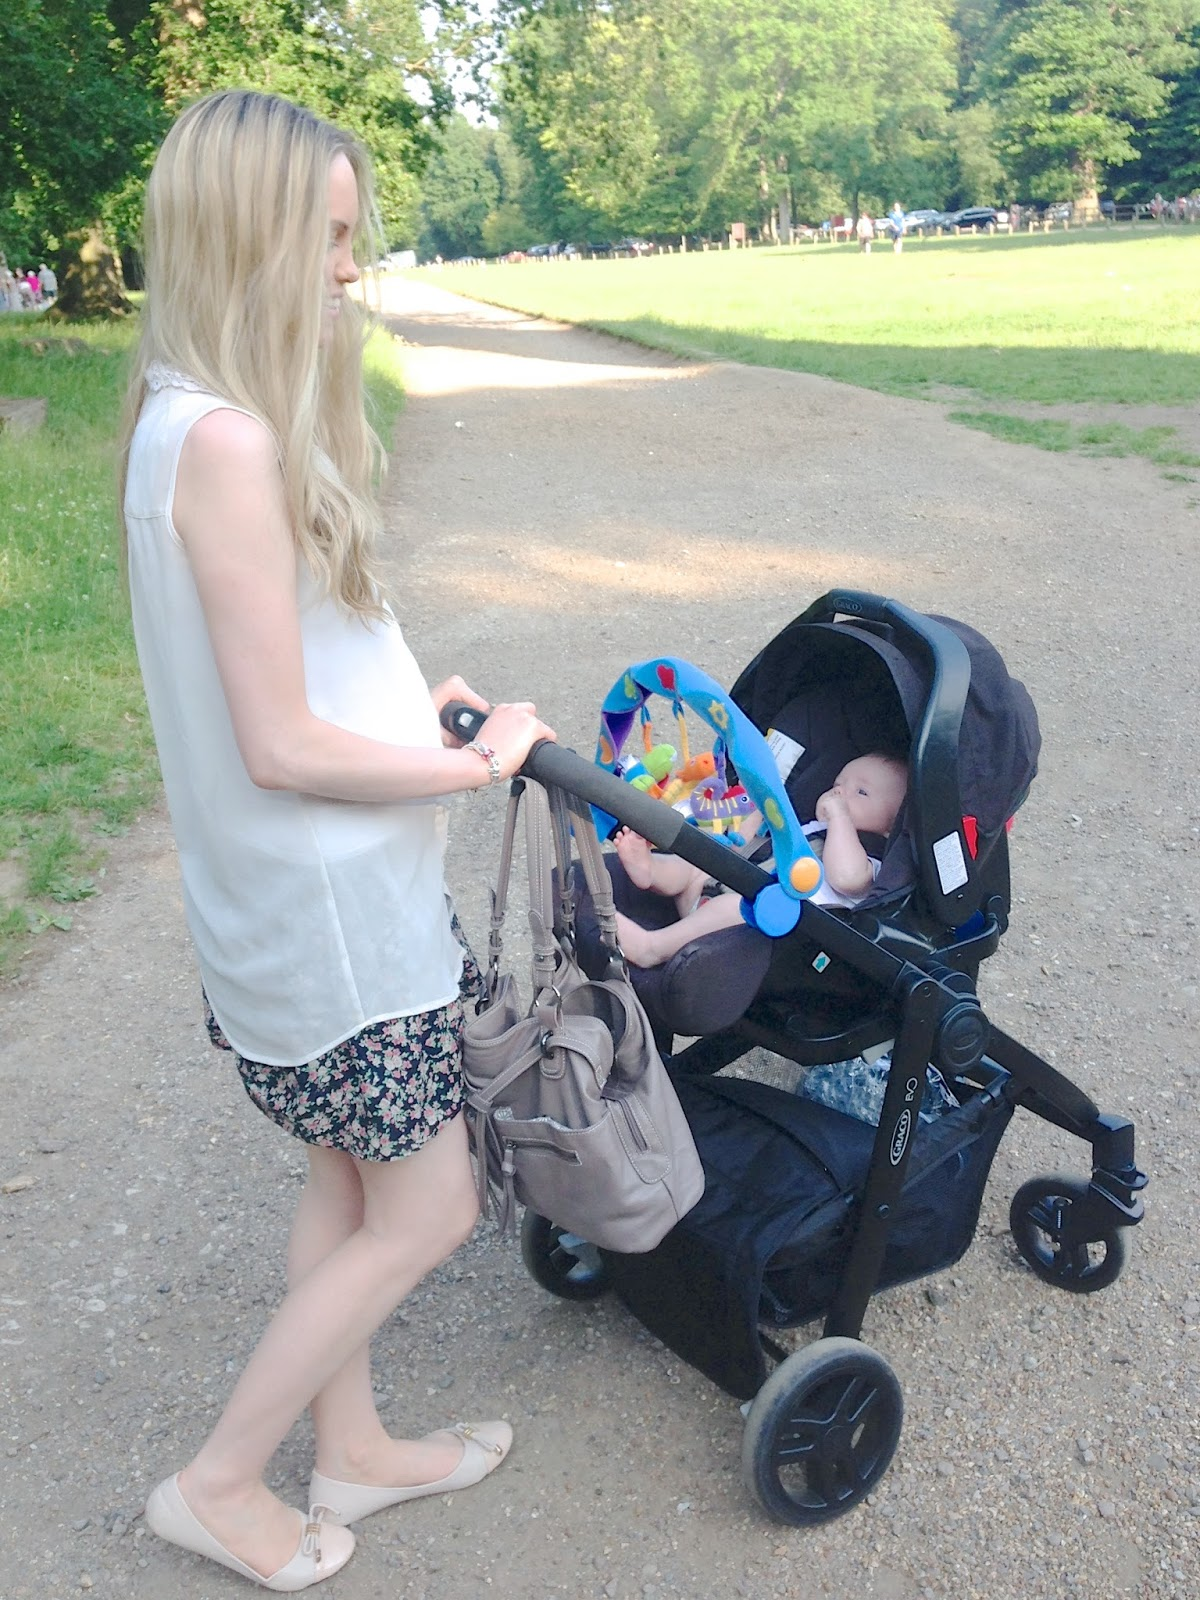 Newborn Car Seat Accessories What To Consider When Buying A Pram Or Pushchair An